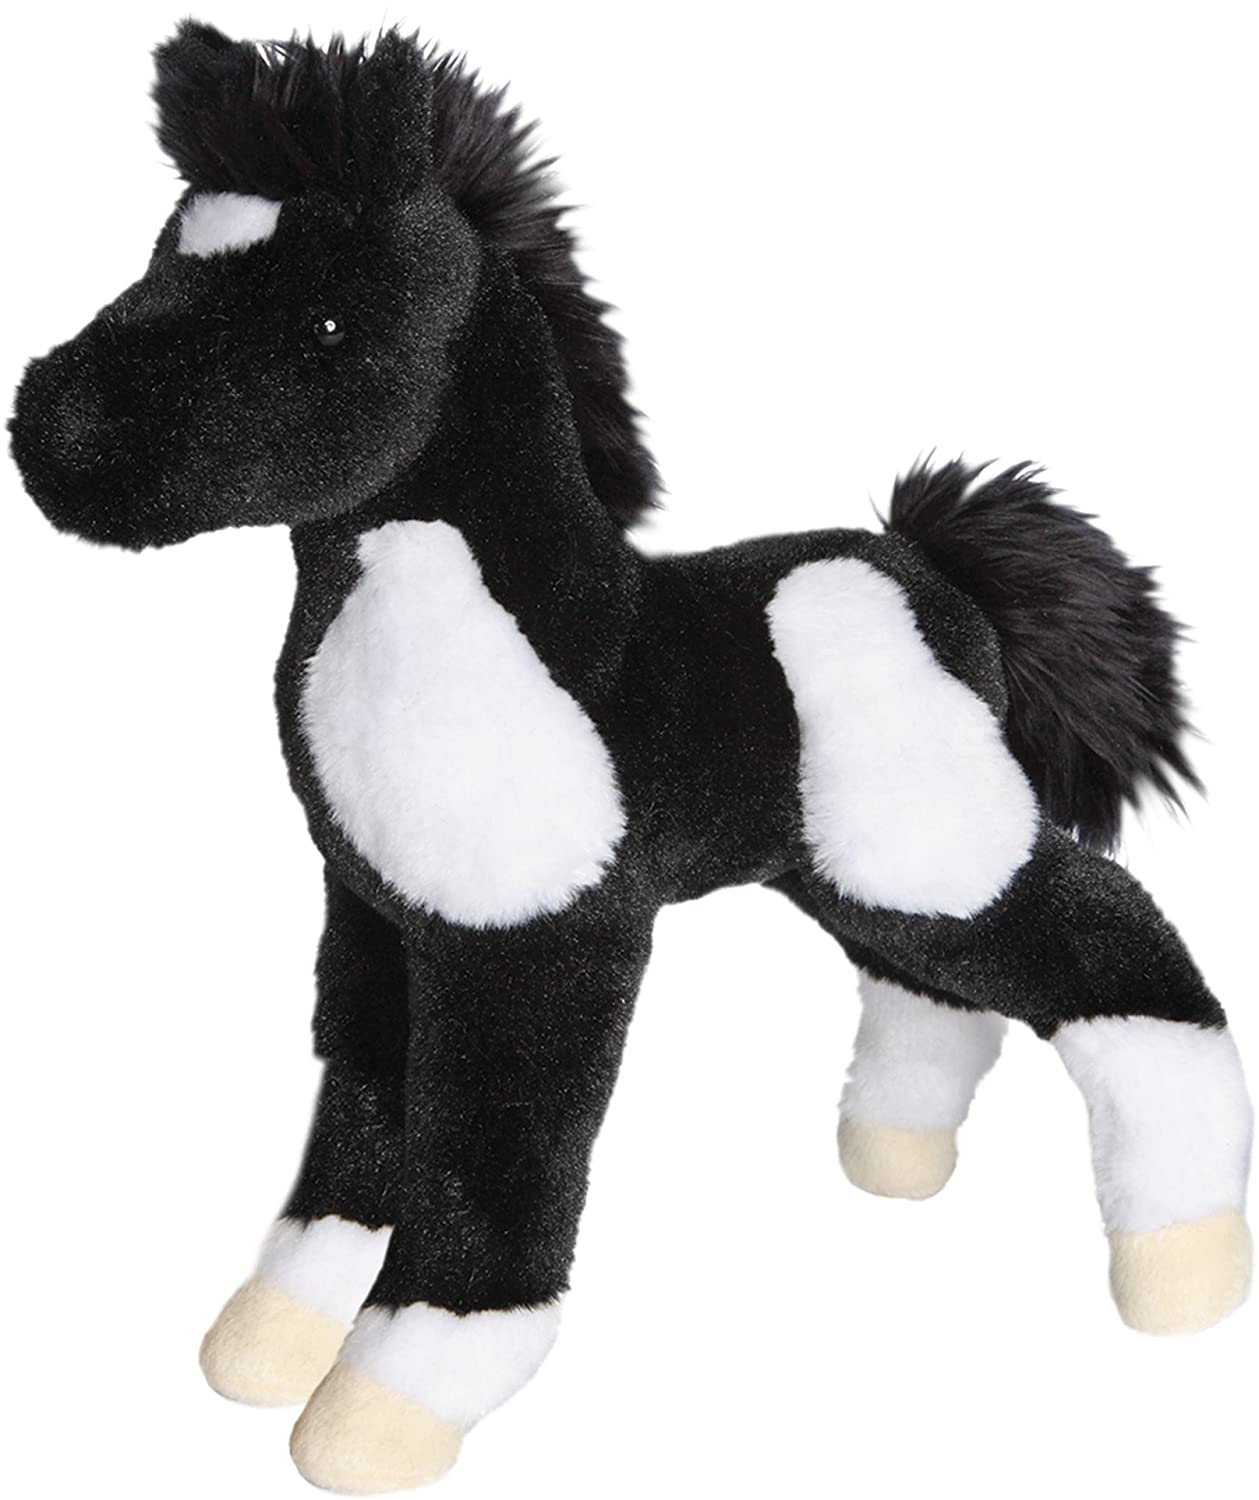 Cuddle Toys 4545 25 cm Long Runner Black and White Foal Plush Toy Douglas Co US